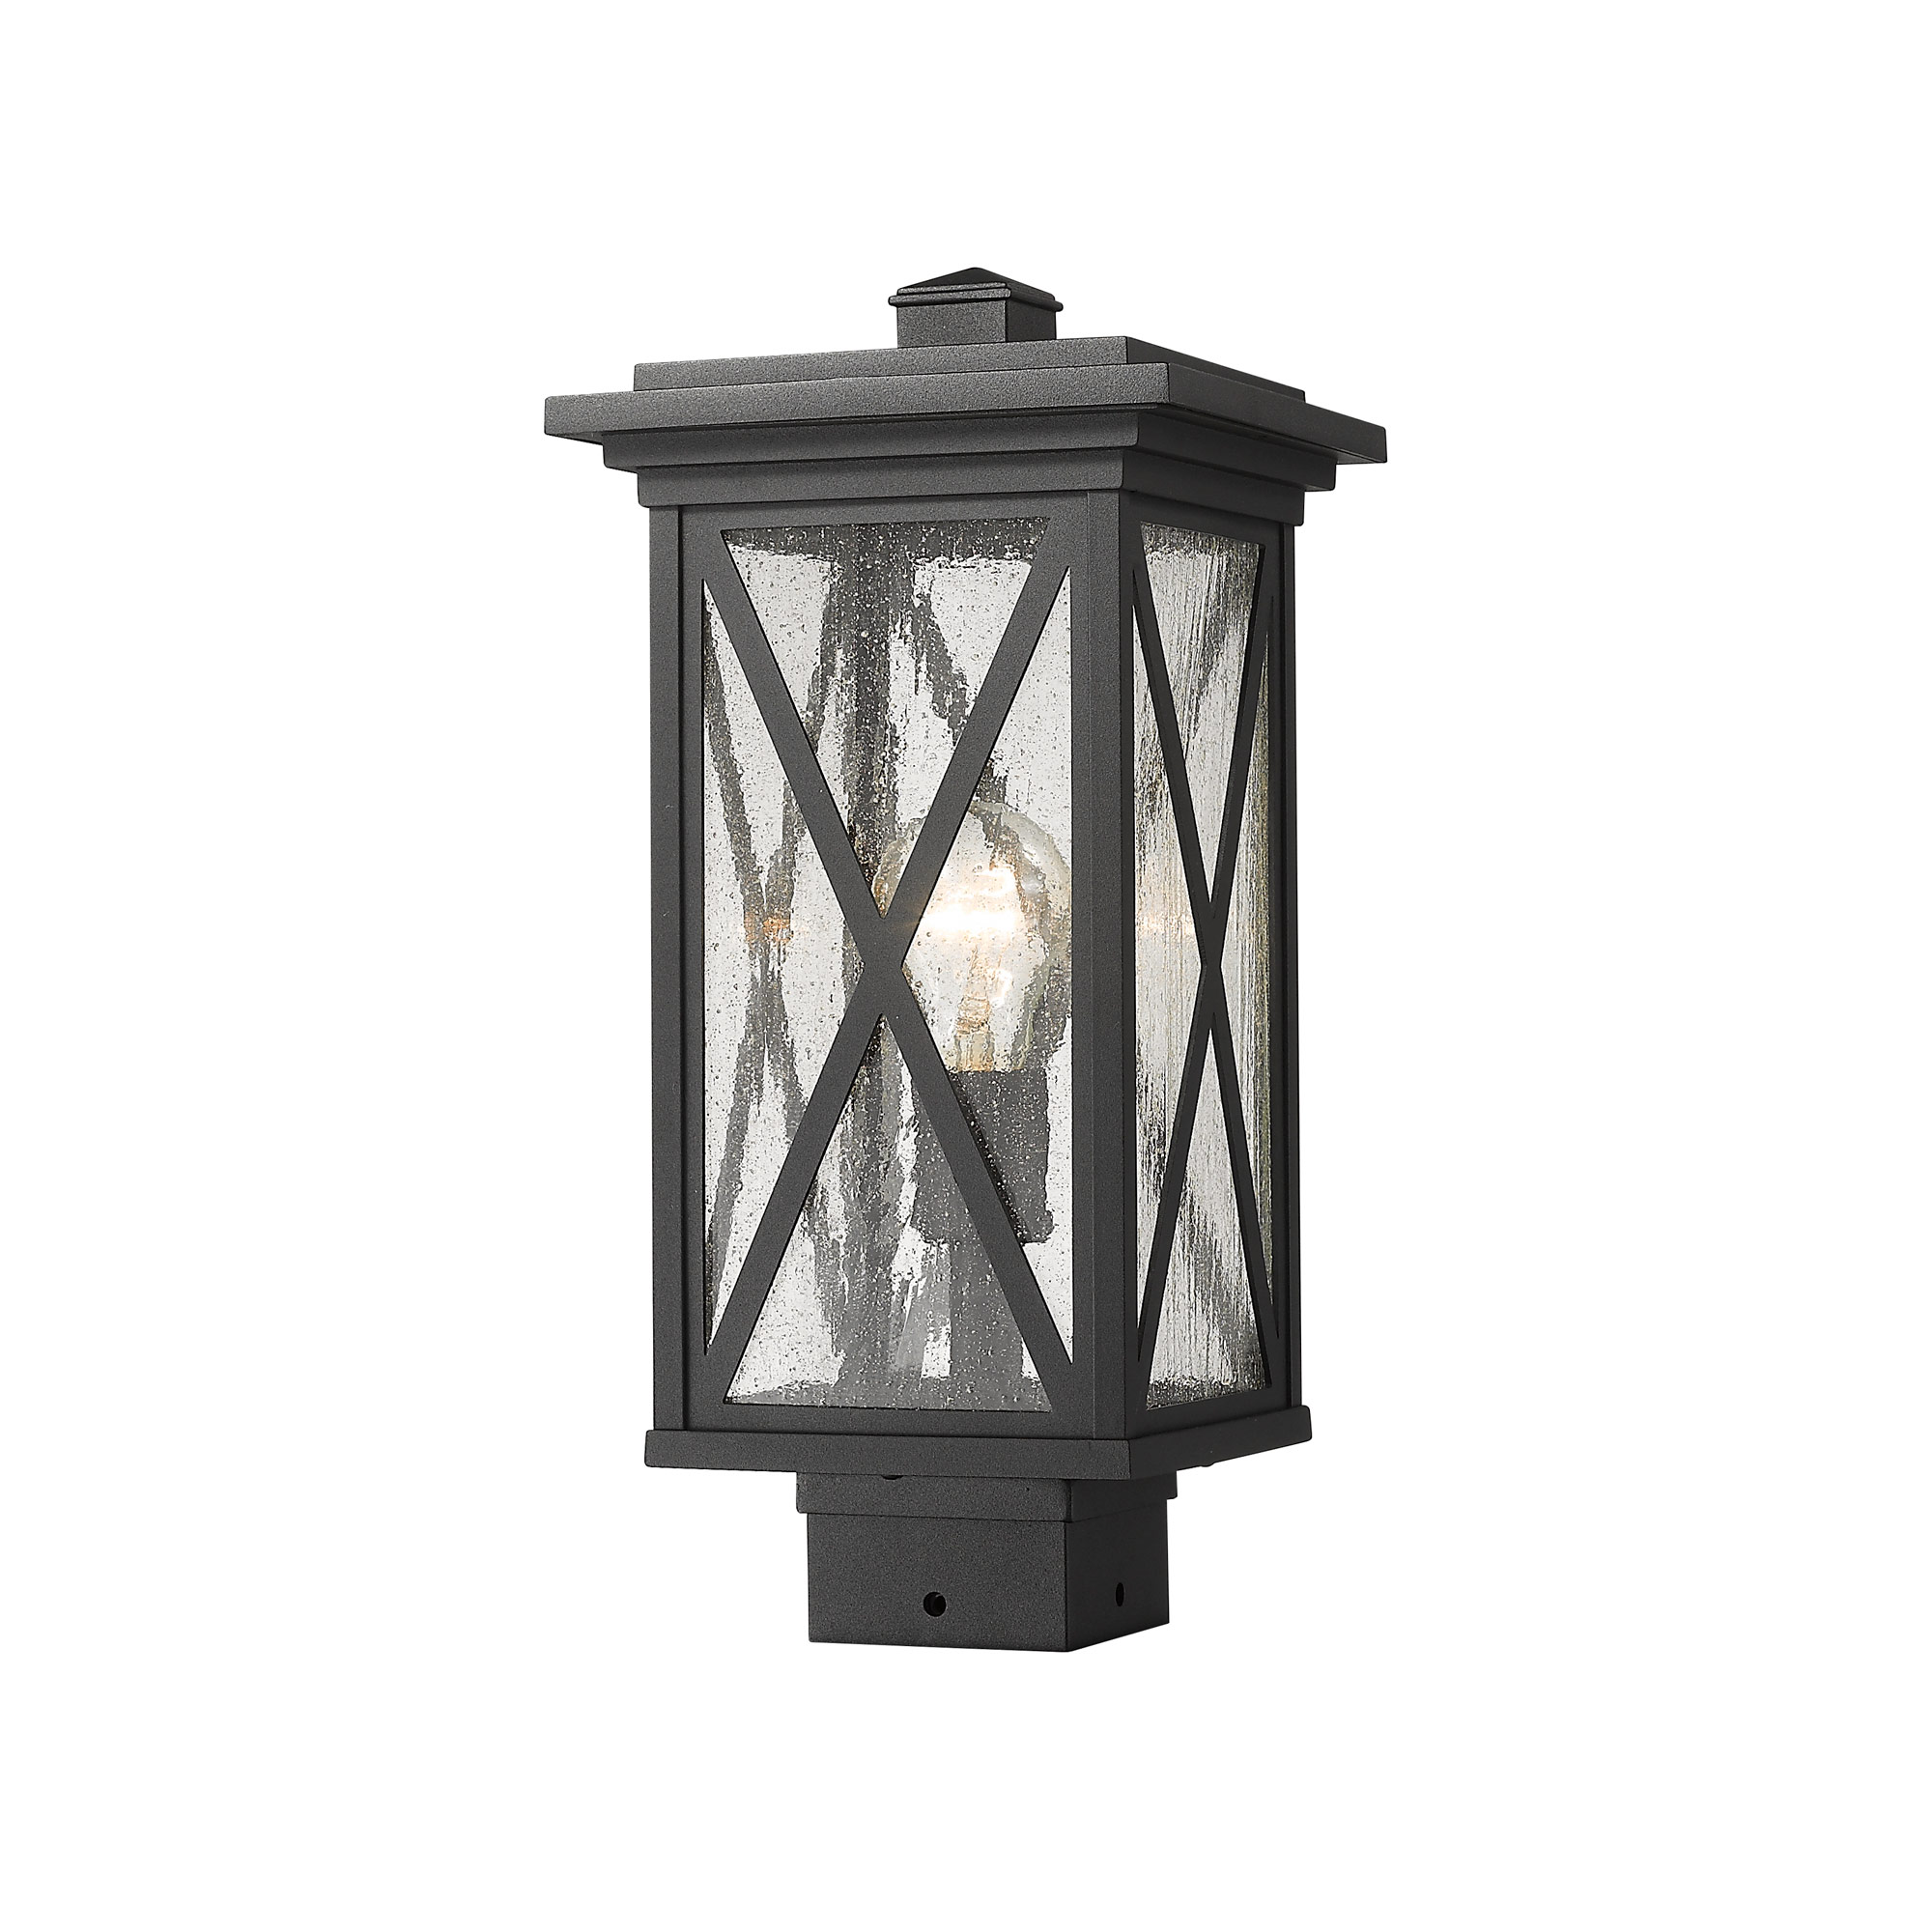 Brookside Outdoor Post Mount With Square Base By Z Lite 583phms Bk